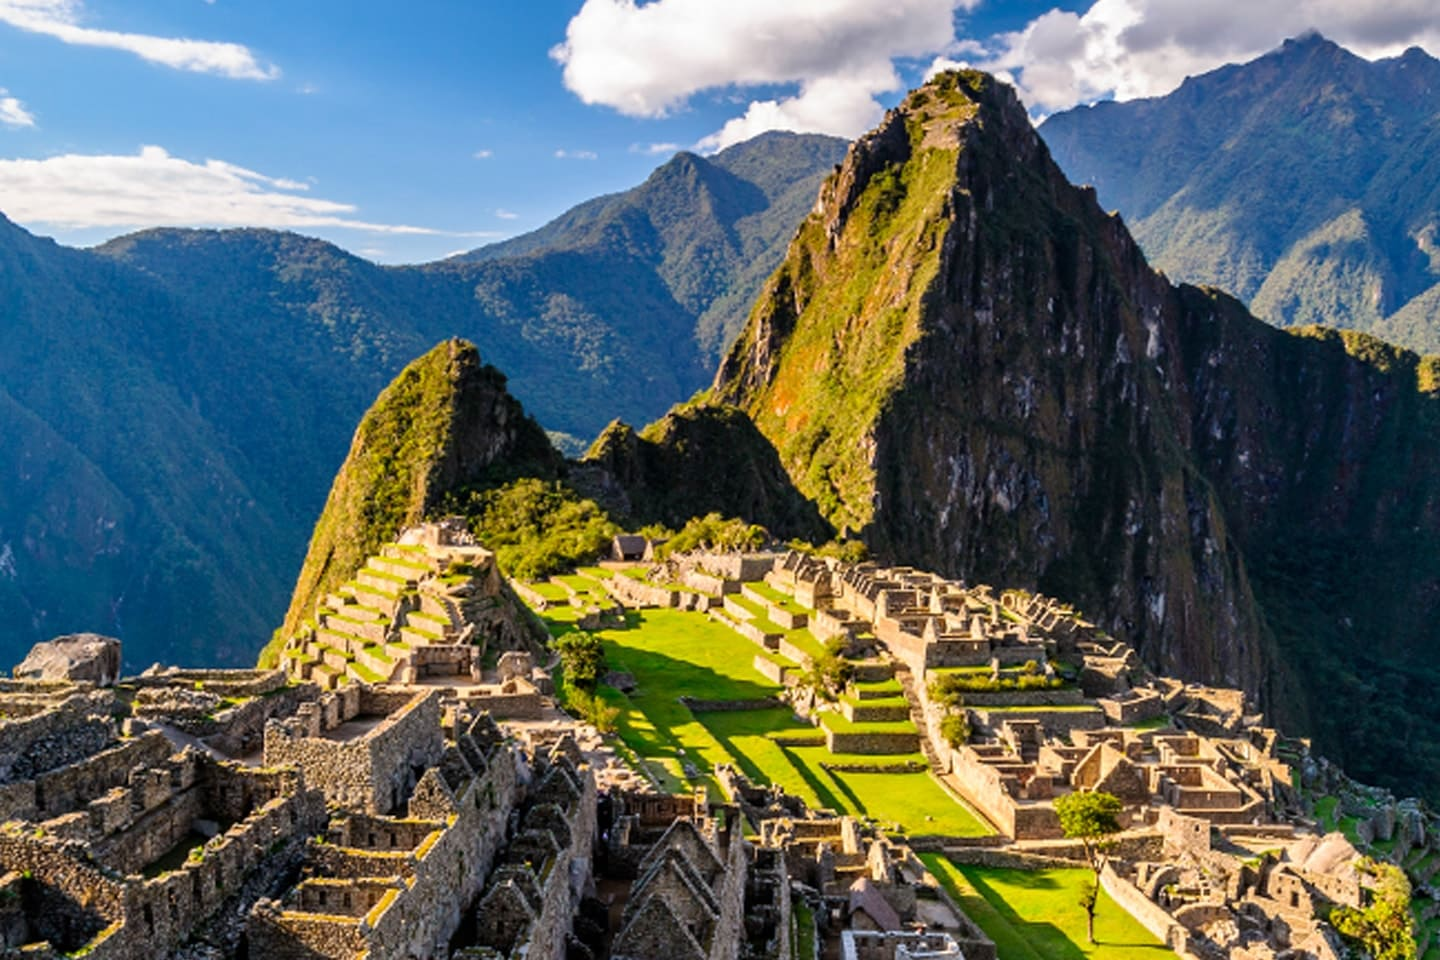 The site was the historic capital of the Inca Empire from the 13th until the 16th-century Spanish conquest. In 1983, Cusco was declared a World Heritage Site by UNESCO.